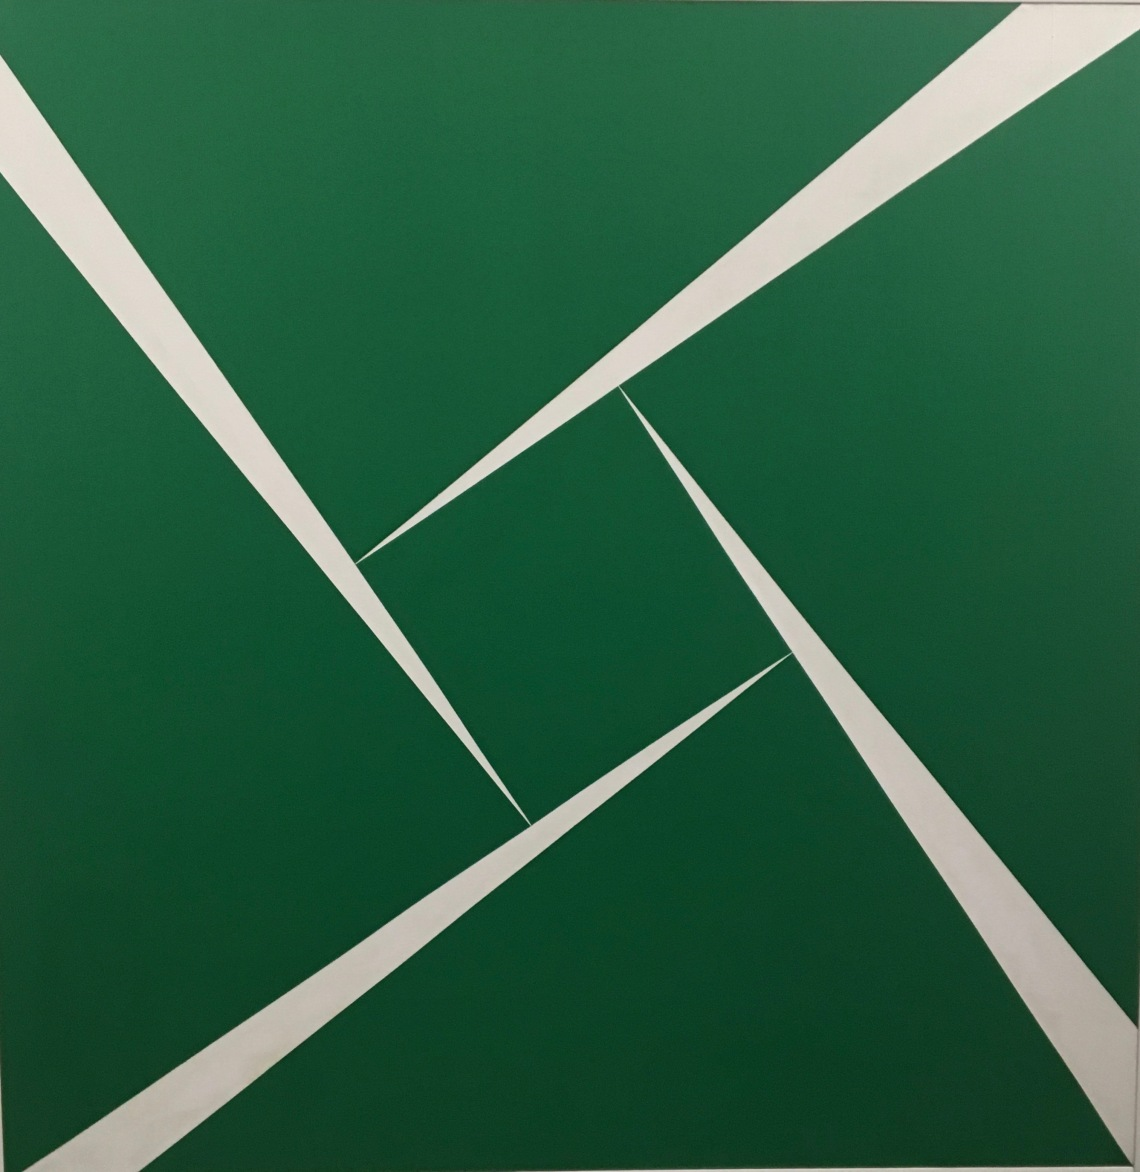 4. Géométries Sud. Carmen Herrera, Green and white, 1956, huile sur toile 124,5 x 124, 5 cm. Collection Ella Fontanals-Cisneros Miami,